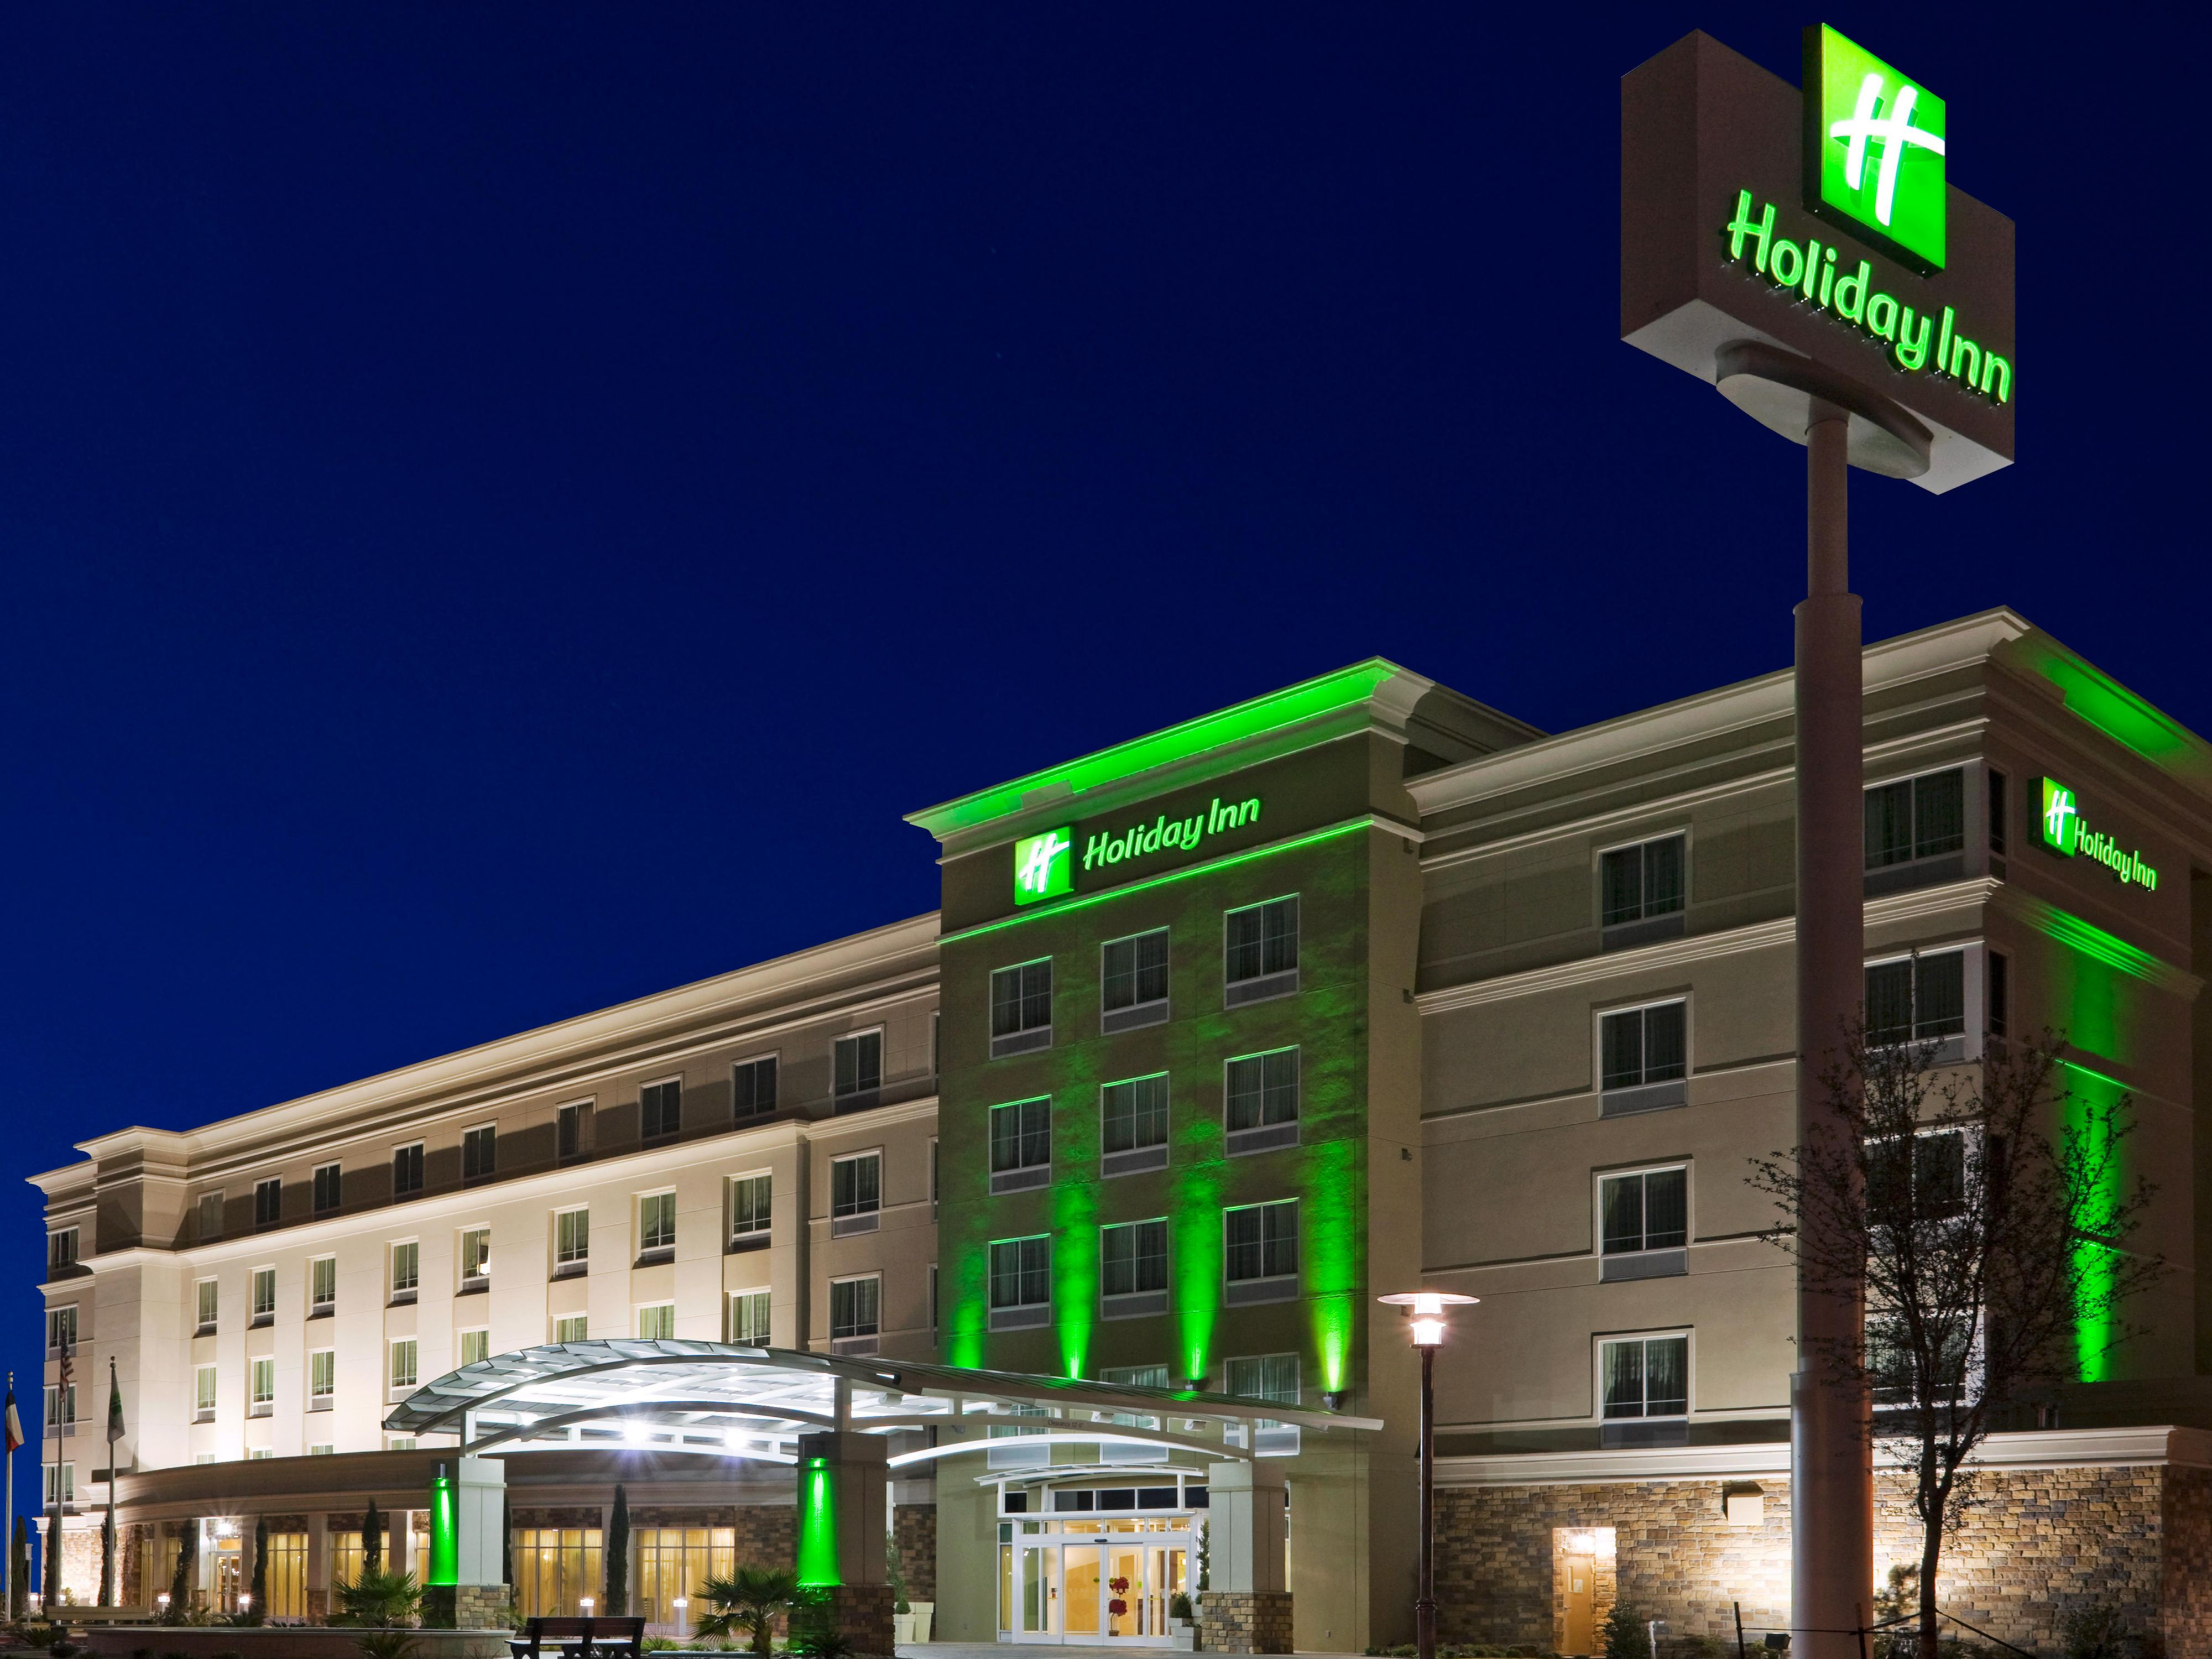 Hotel Indigo Waco Candlewood Suites Waco Long Term Stay Hotels